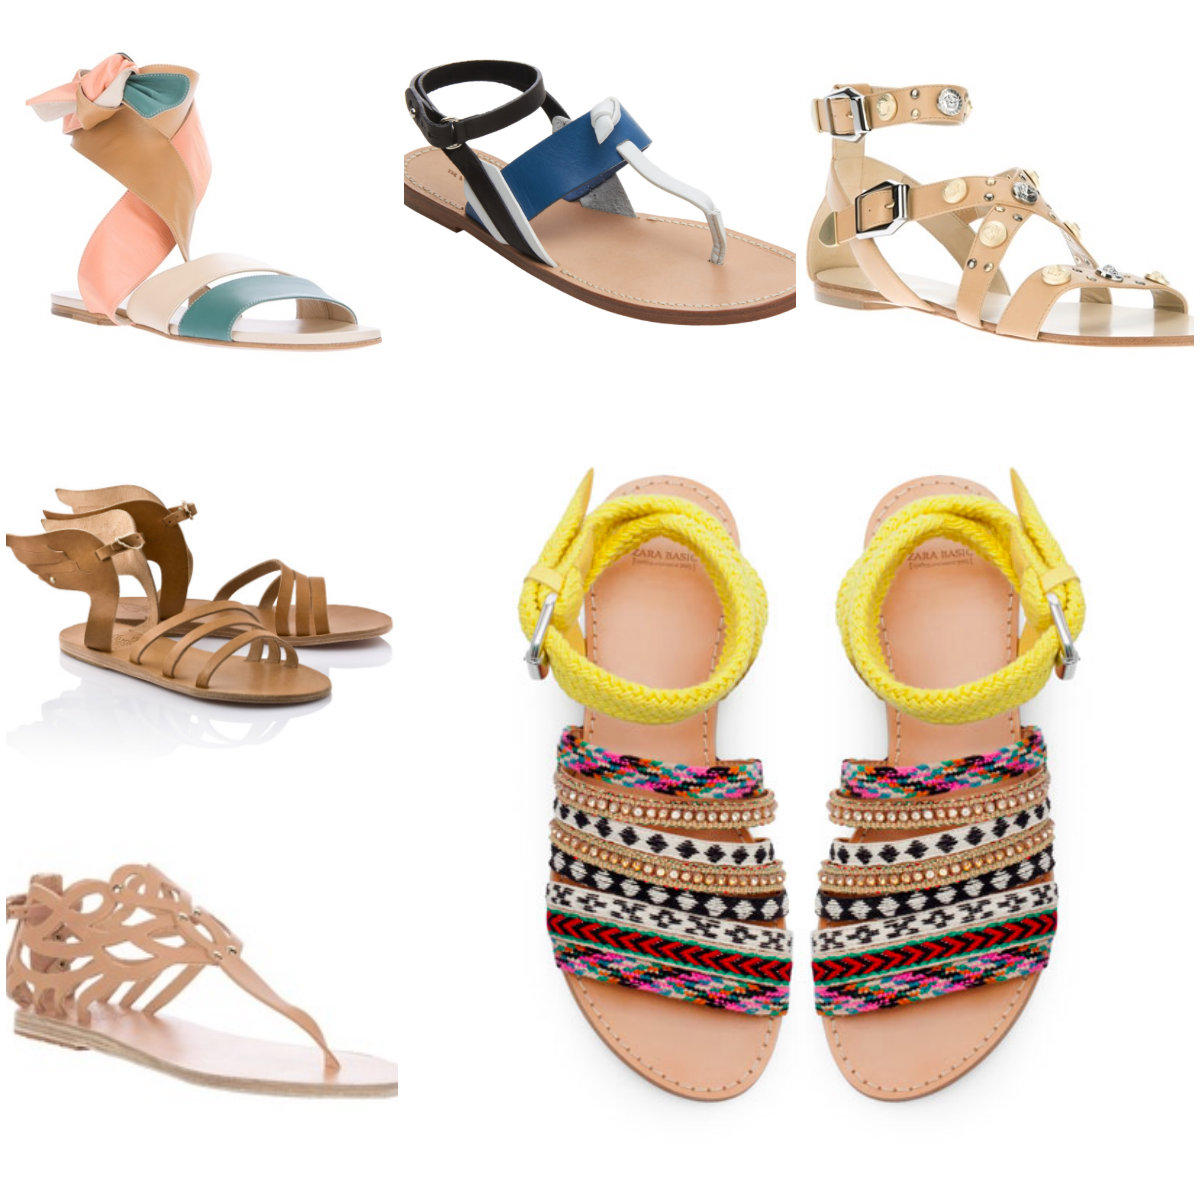 neutral sandal collage